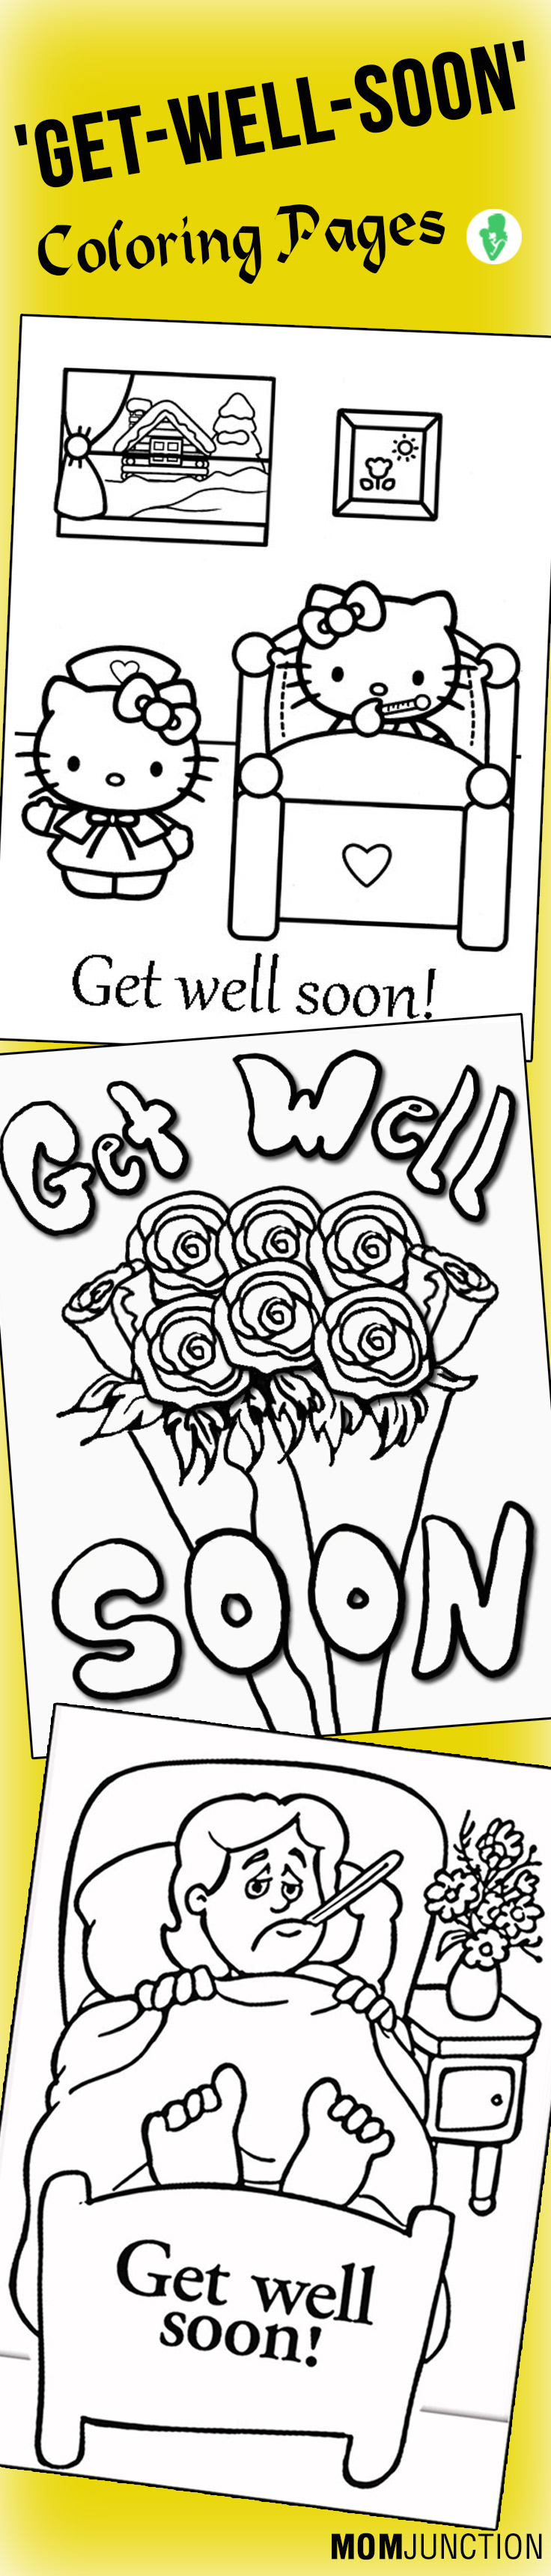 Top 25 Free Printable Get Well Soon Coloring Pages Online | Free ...